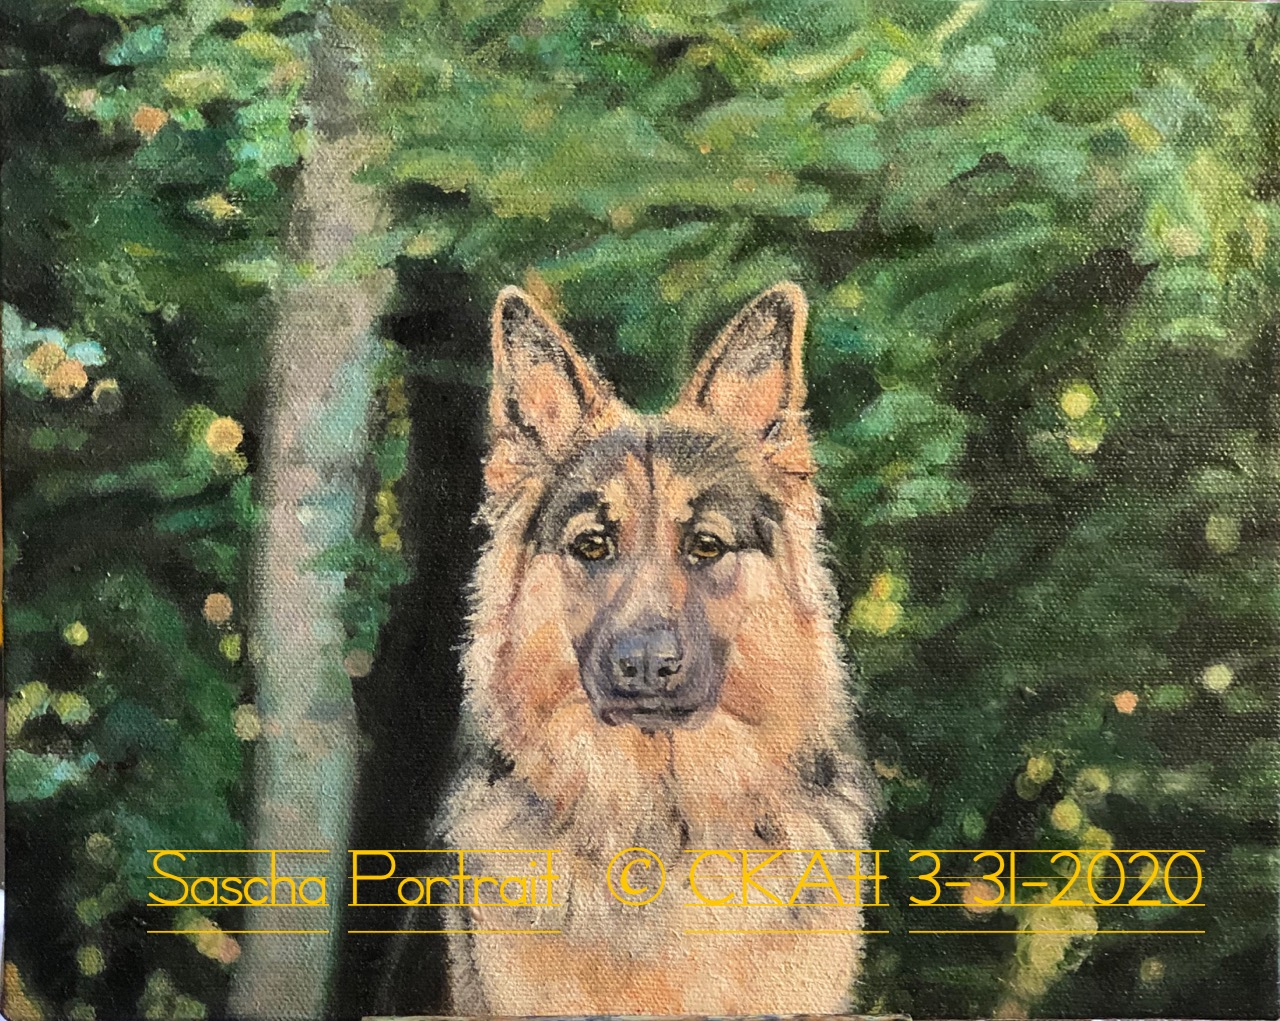 Sascha 2 Finished Portrait3-31-2020 CKatt